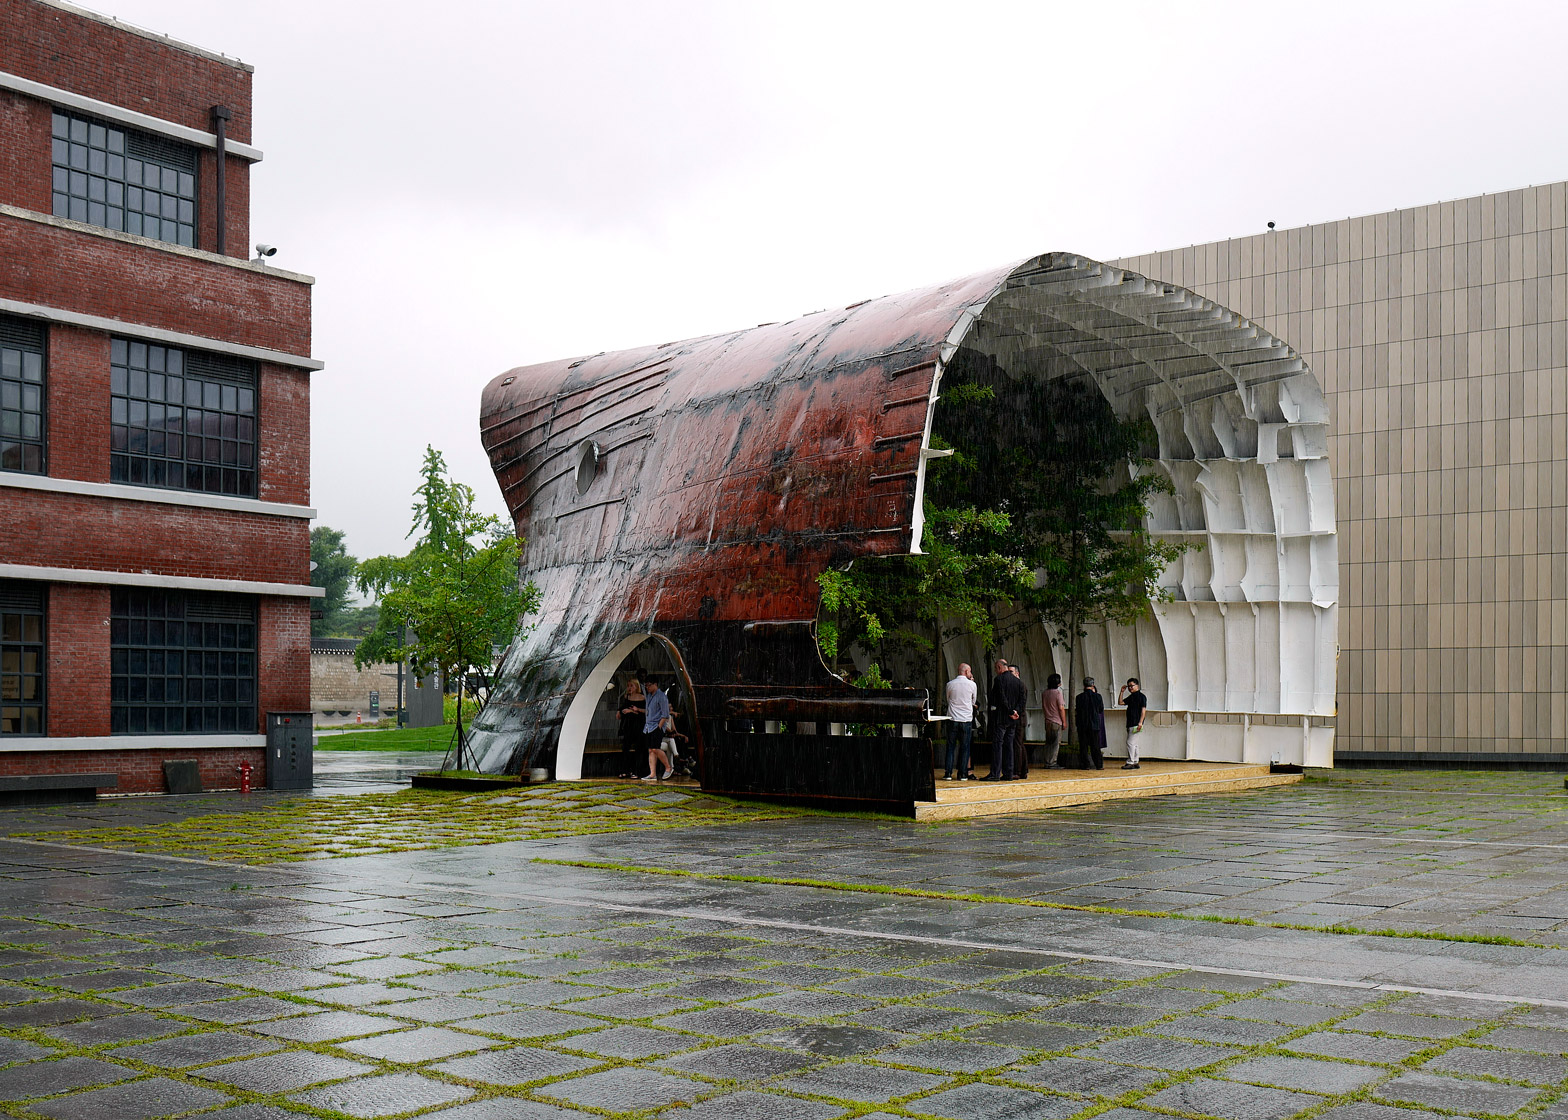 Temp'L by Shinslab Architecture is an installation recycled from a rusty old cargo ship for a museum courtyard in Seoul